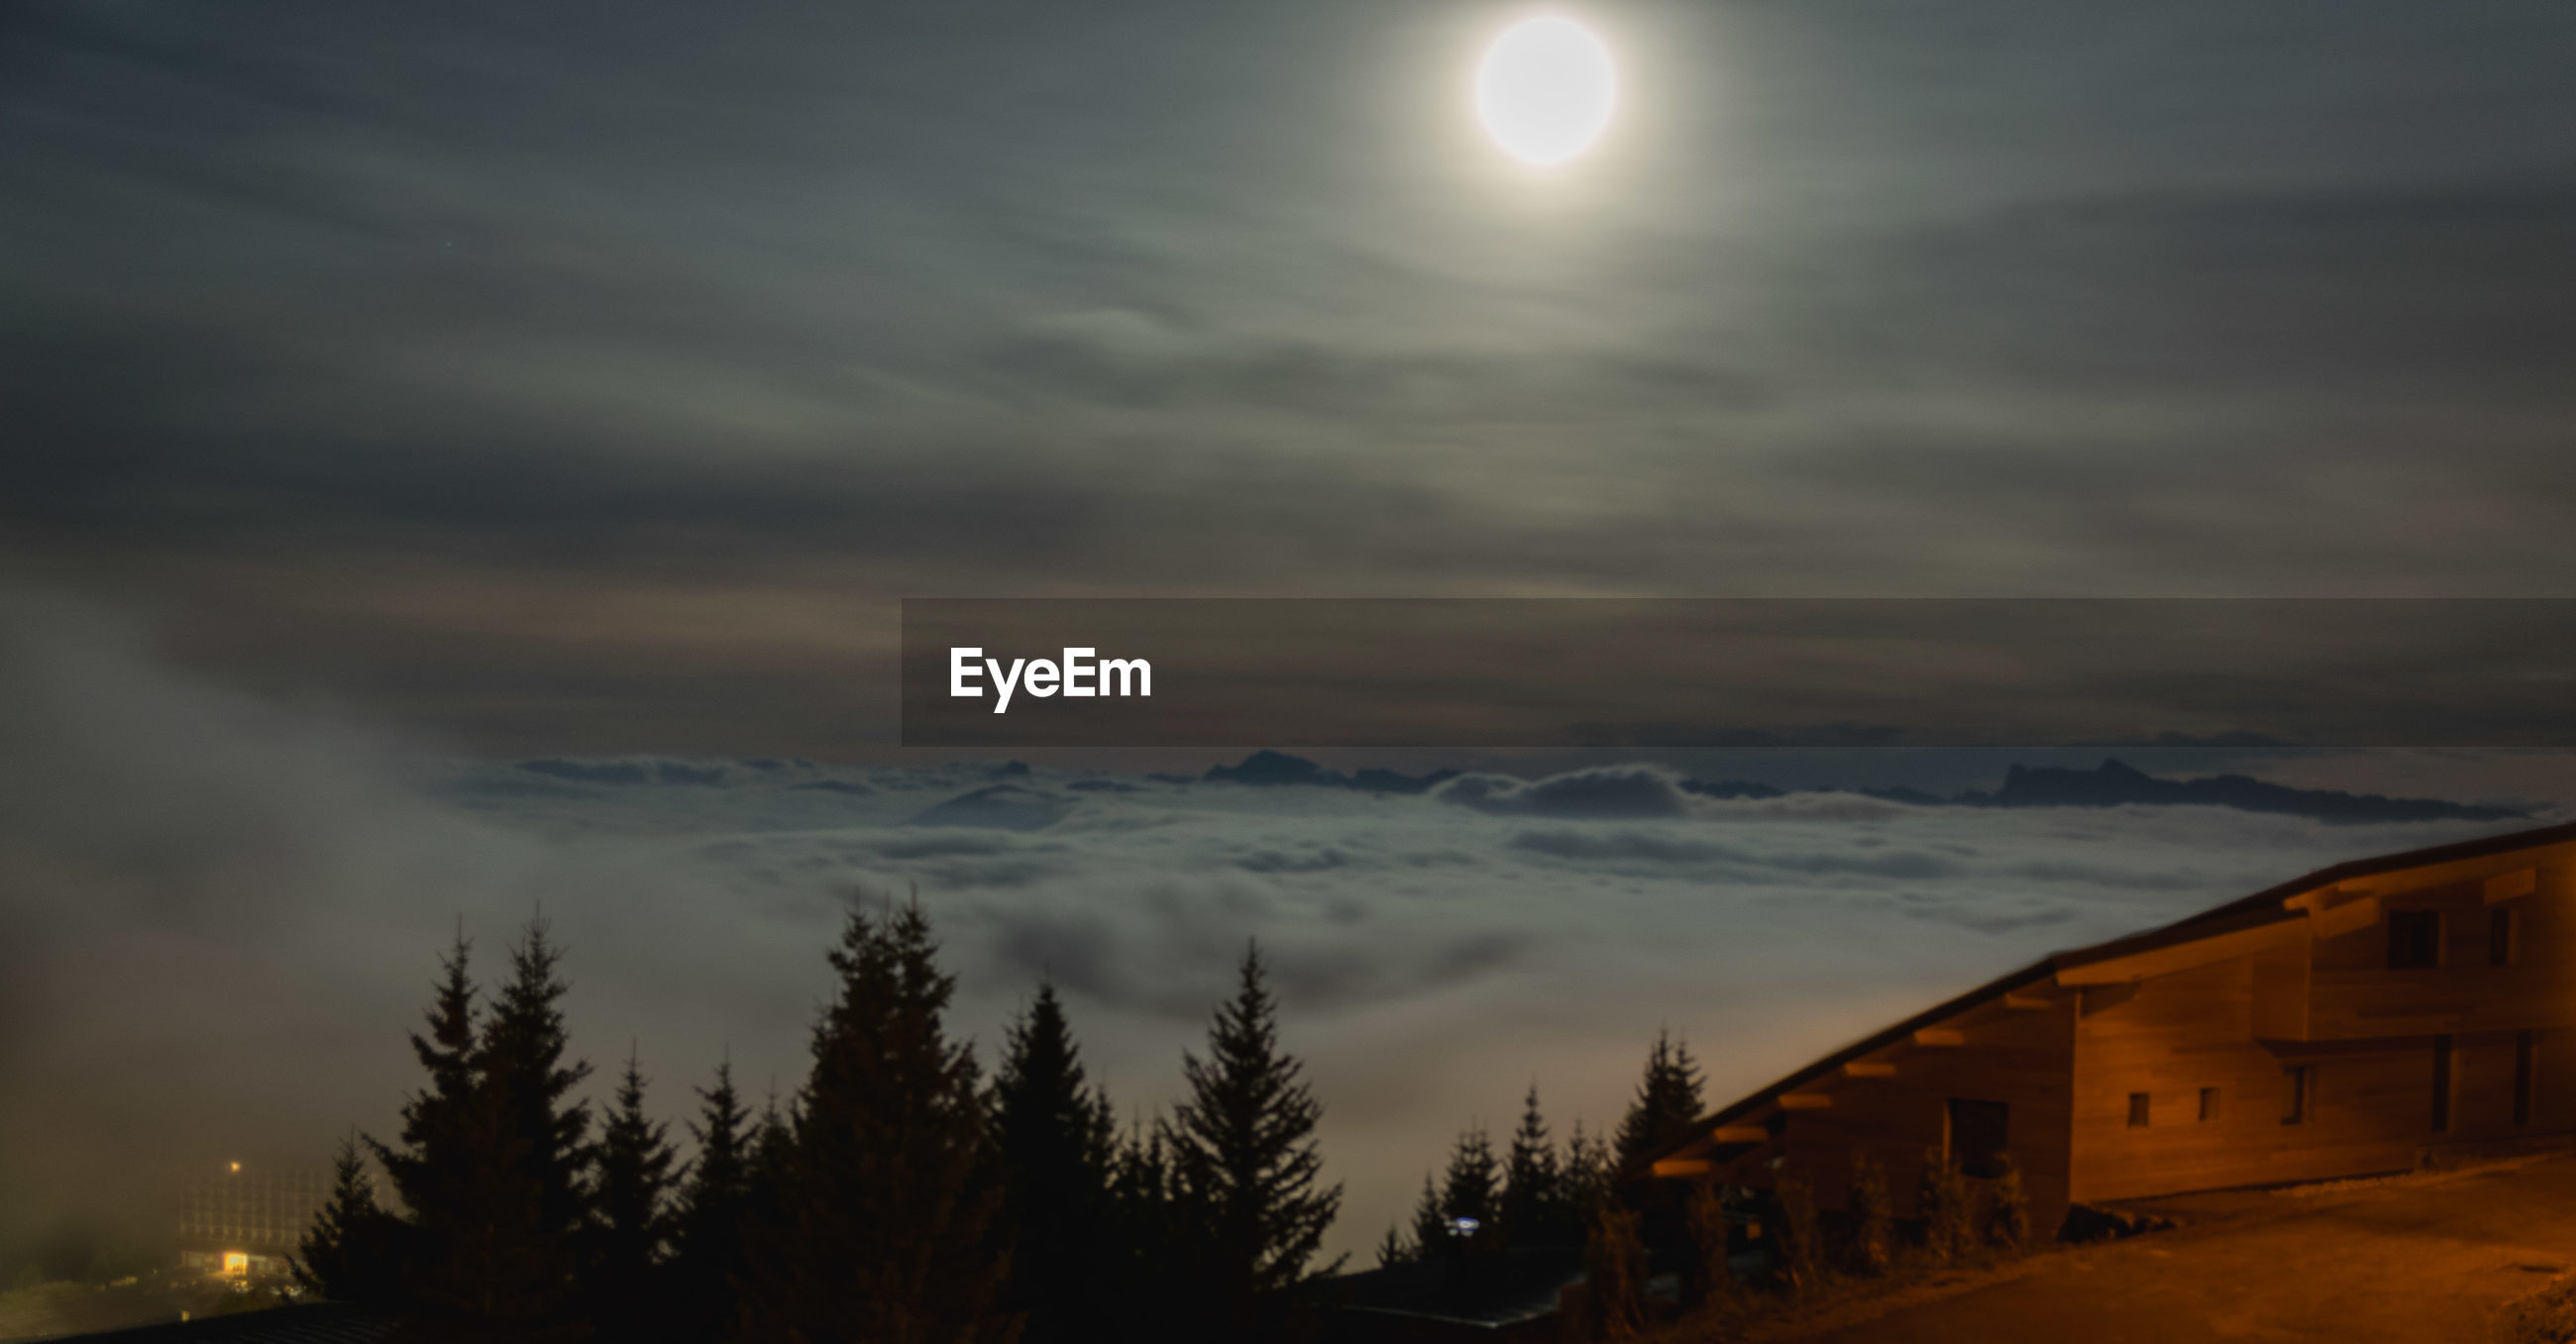 SCENIC VIEW OF SNOWCAPPED MOUNTAINS AGAINST SKY DURING NIGHT